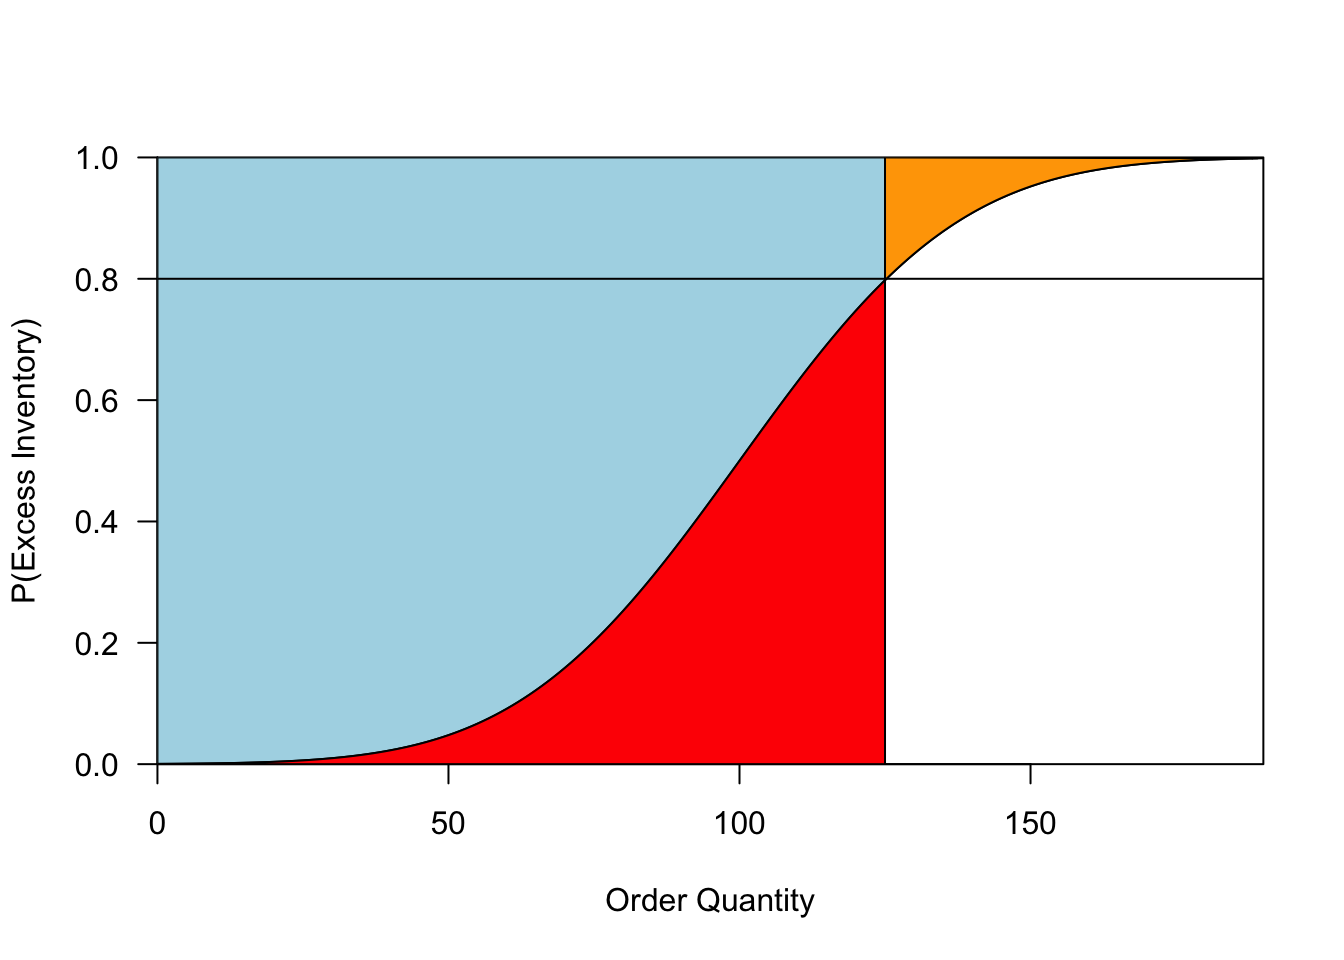 Outcomes when demand is uncertain (left) and more certain (right). When ordering optimally, the probability of having _some_ overage is the same in both cases, but the _expected_ overage and underage (in red and orange, respectively) is much lower when demand is more certain.